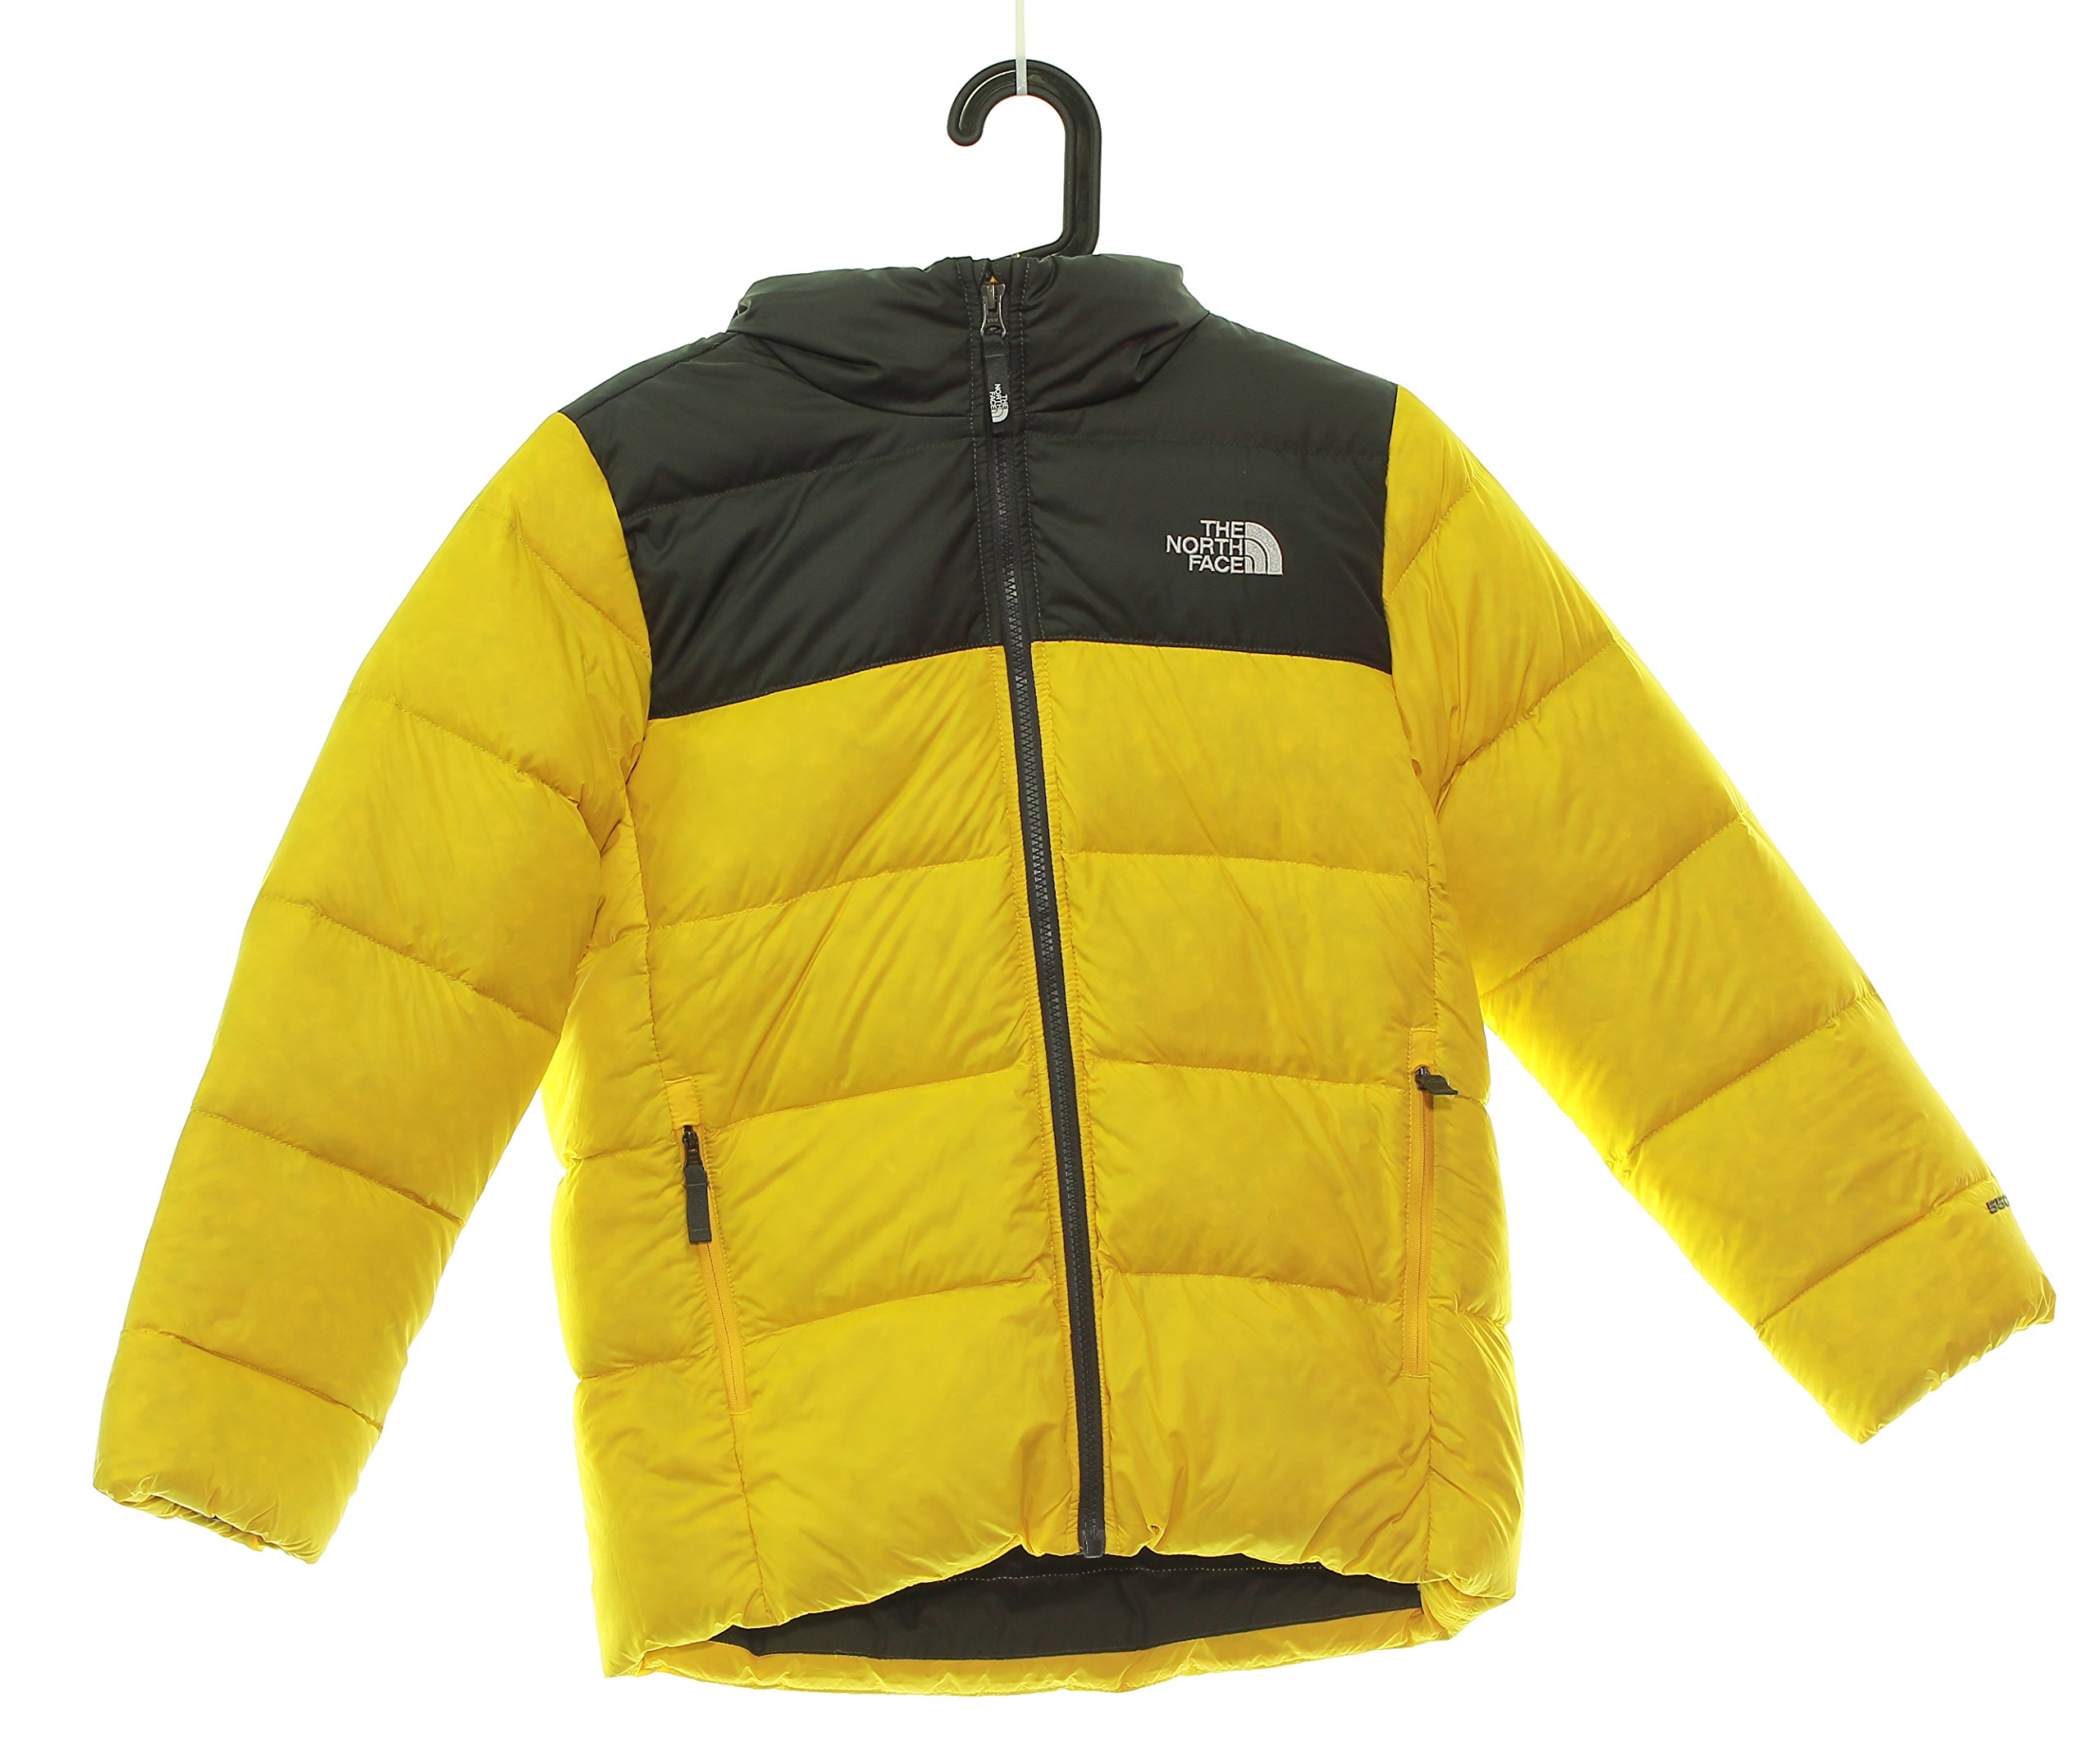 Boy's The North Face Double Down Triclimate Jacket 10/12 Yellow, Medium by No Warranty The North Face